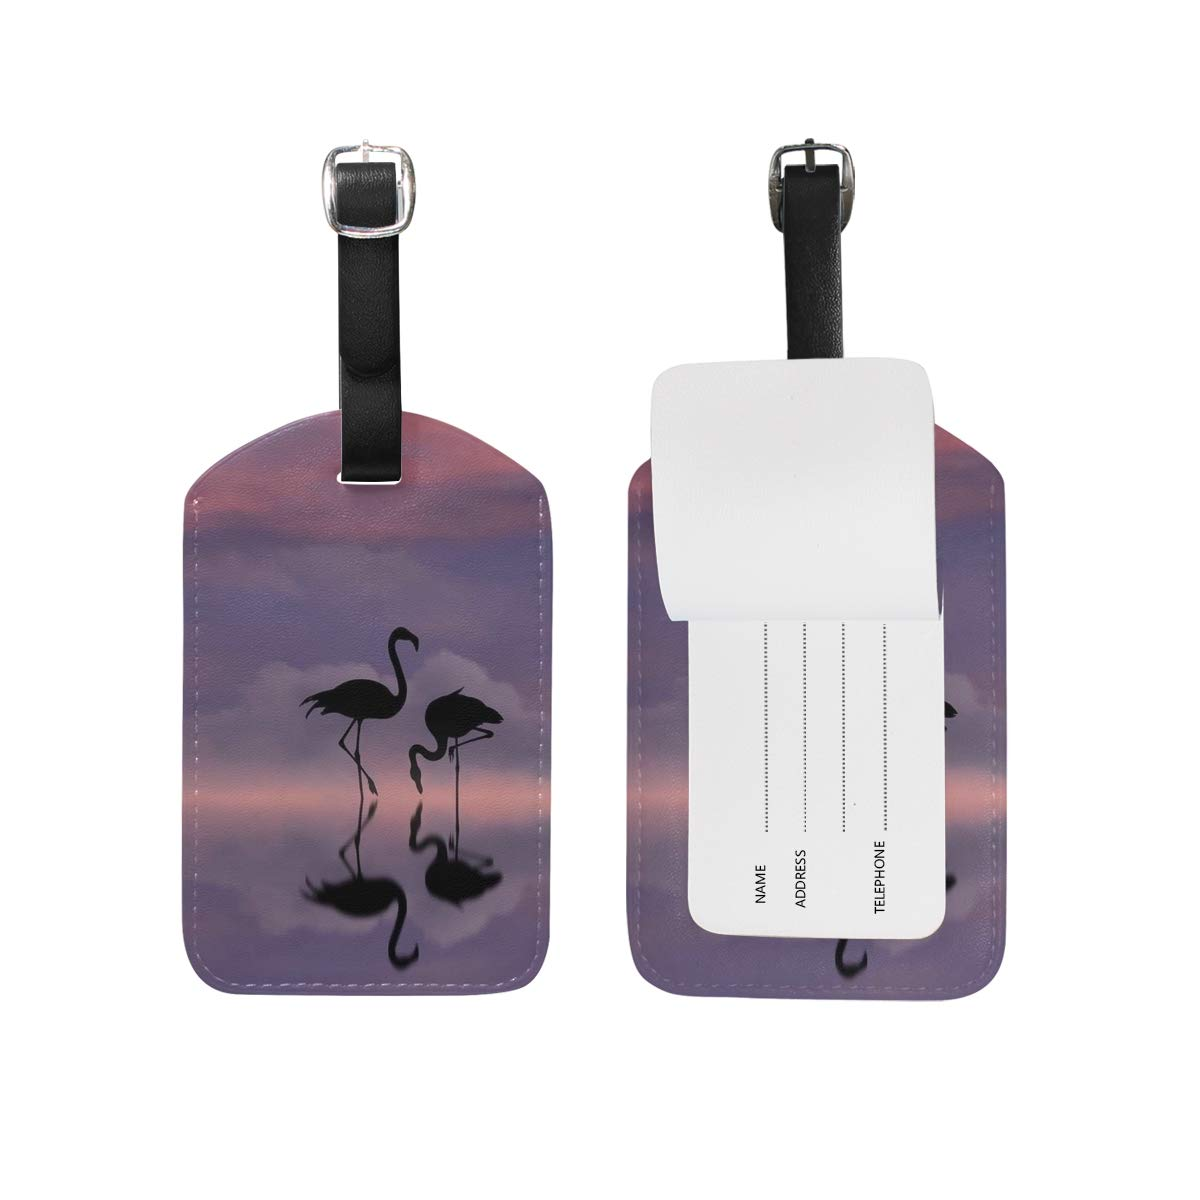 Aibileen Luggage Tags Tropical Flamingo Romantic Leather Travel Accessories Valentines Day Gift